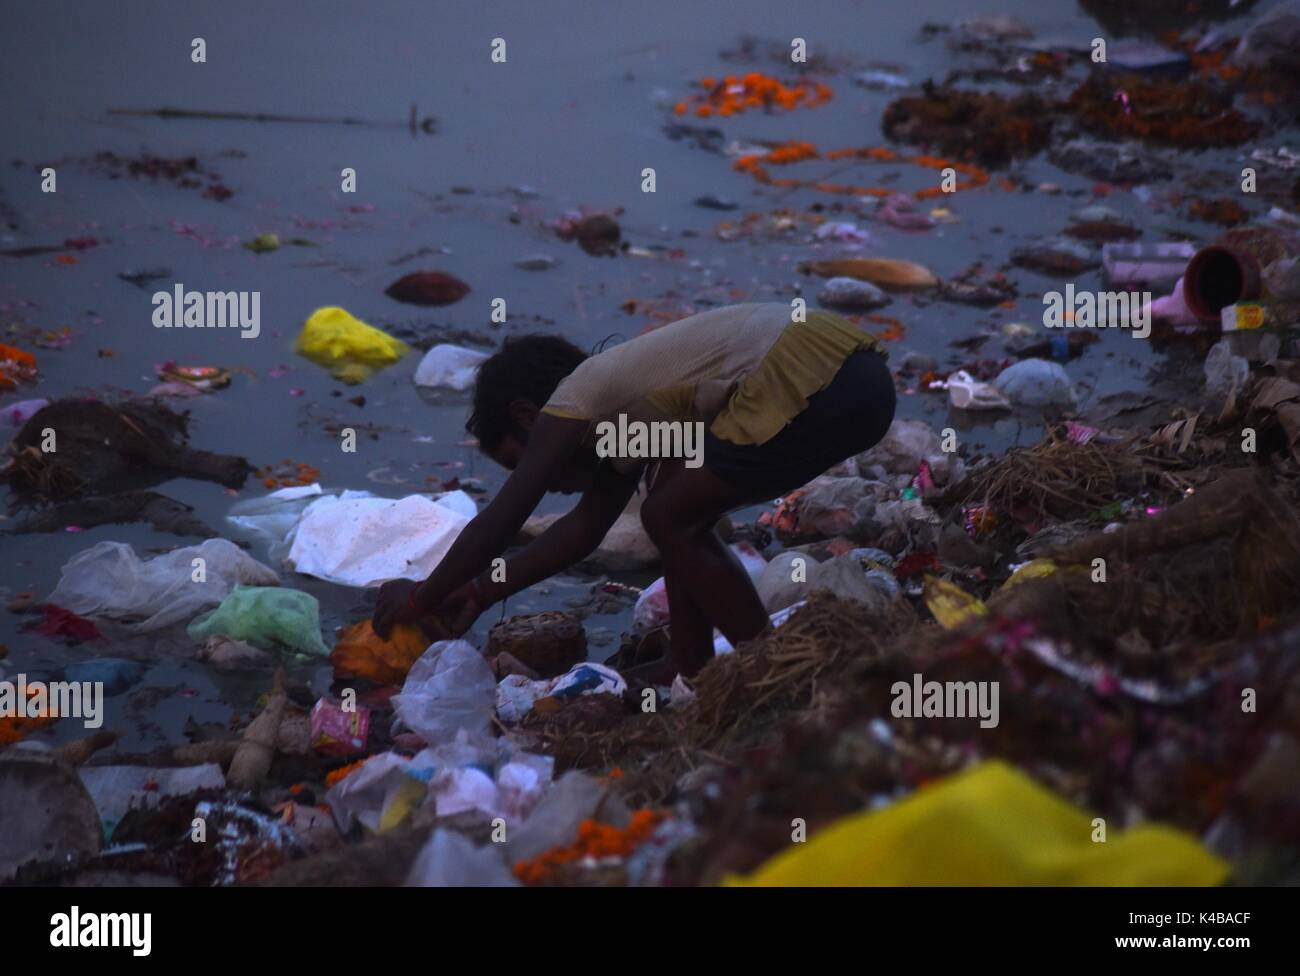 Allahabad, Uttar Pradesh, india. 5th Sep, 2017. Allahabad: An Indian child girl searches for coin after Hindu Devotee immerse Lord Ganesha's idol in a pond near River Ganga on the occasion of Anant Chaturdasi festival celebration in Allahabad on 05-09-2017. Credit: Prabhat Kumar Verma/ZUMA Wire/Alamy Live News - Stock Image